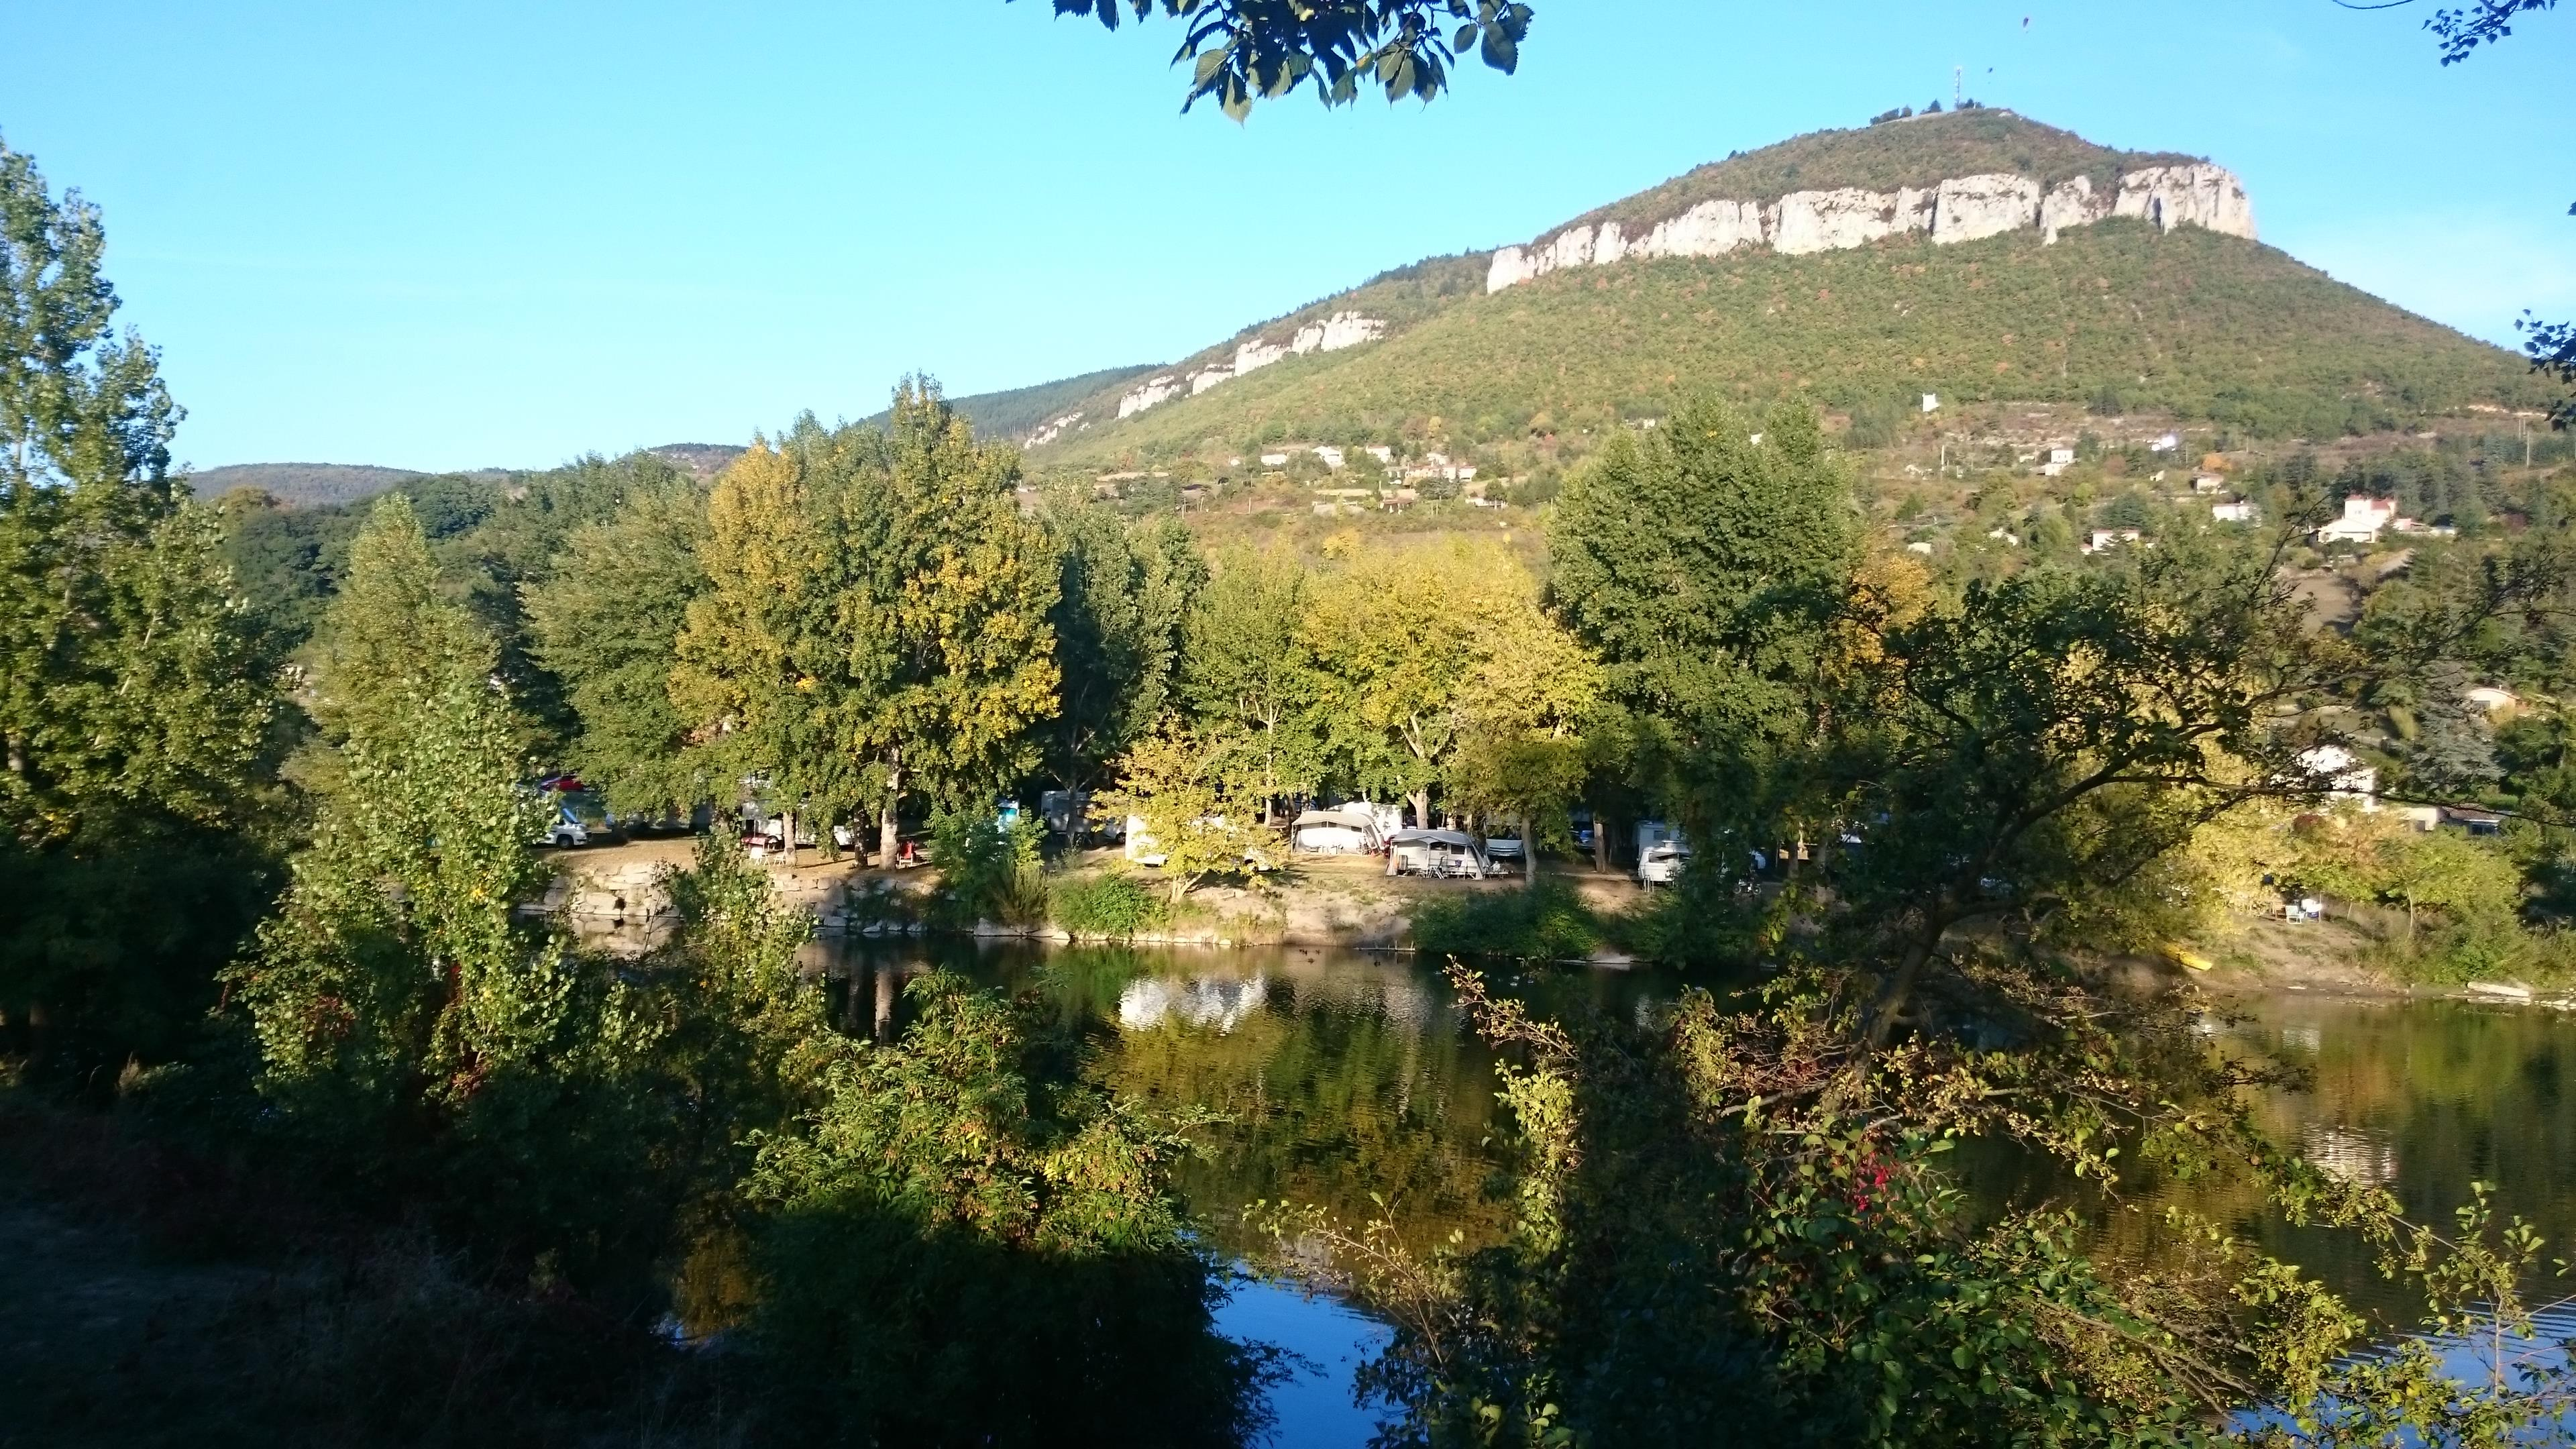 Establishment Camping LARRIBAL - MILLAU